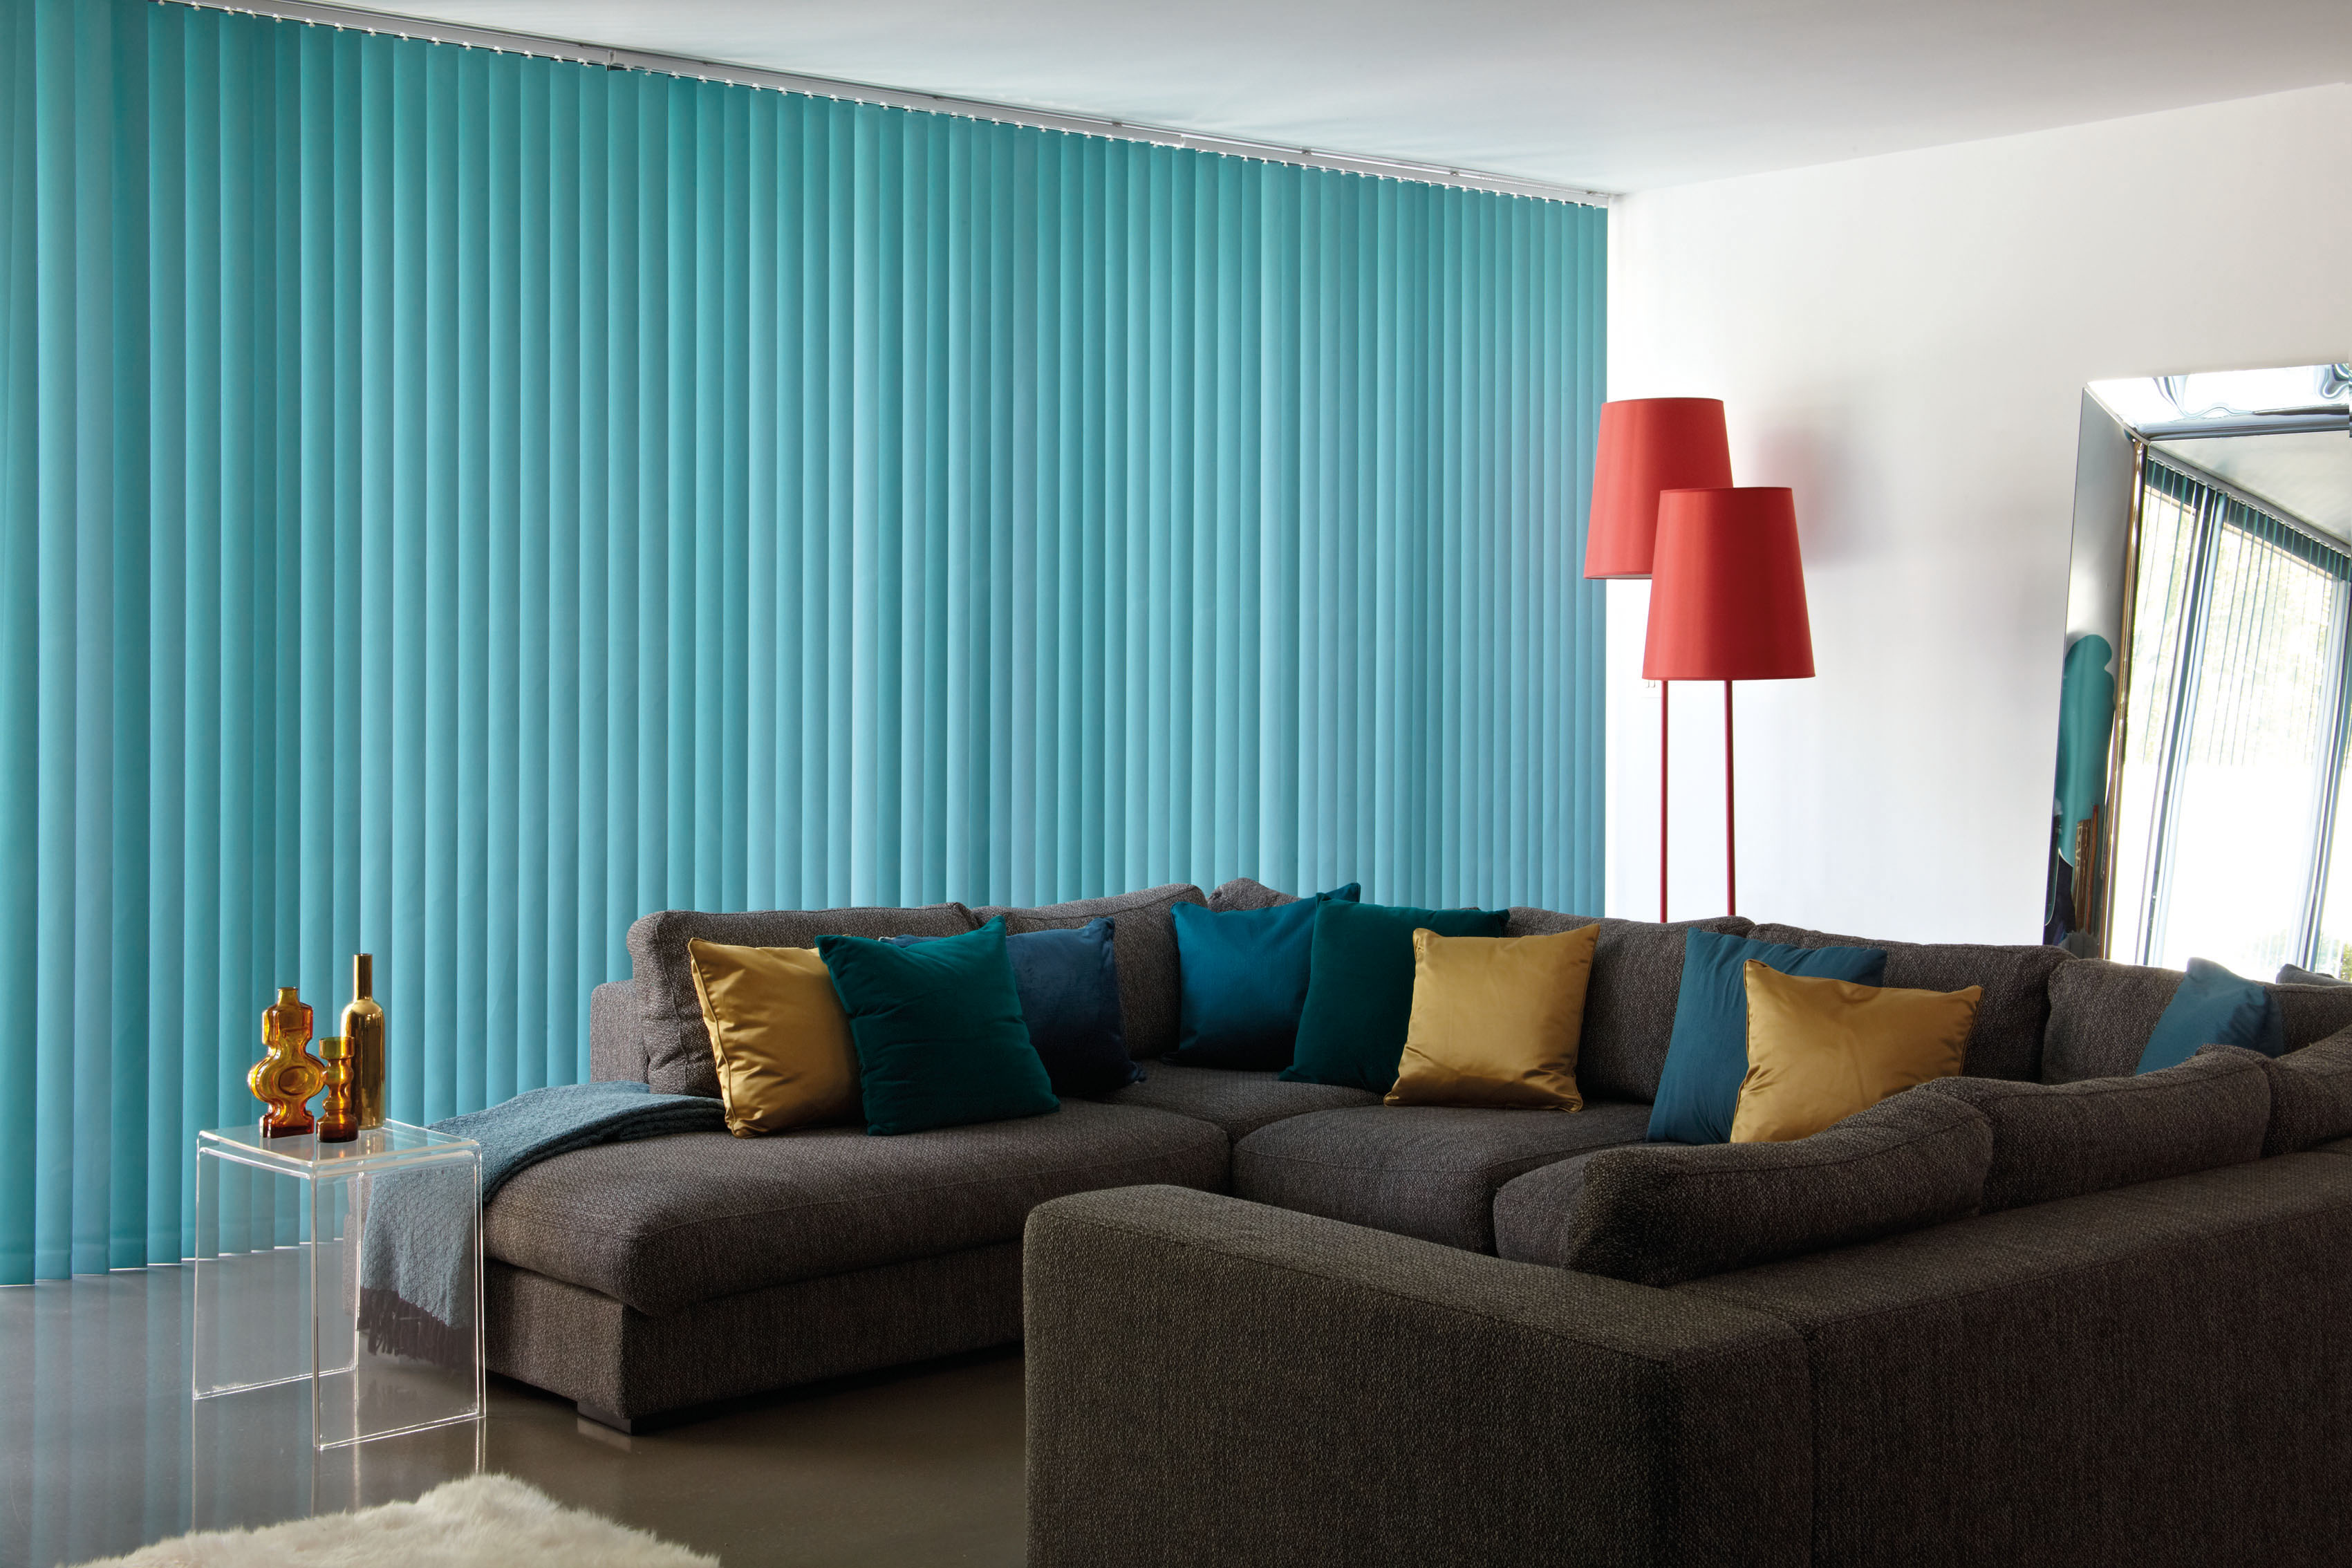 Vertical Blinds D Amp C Blinds